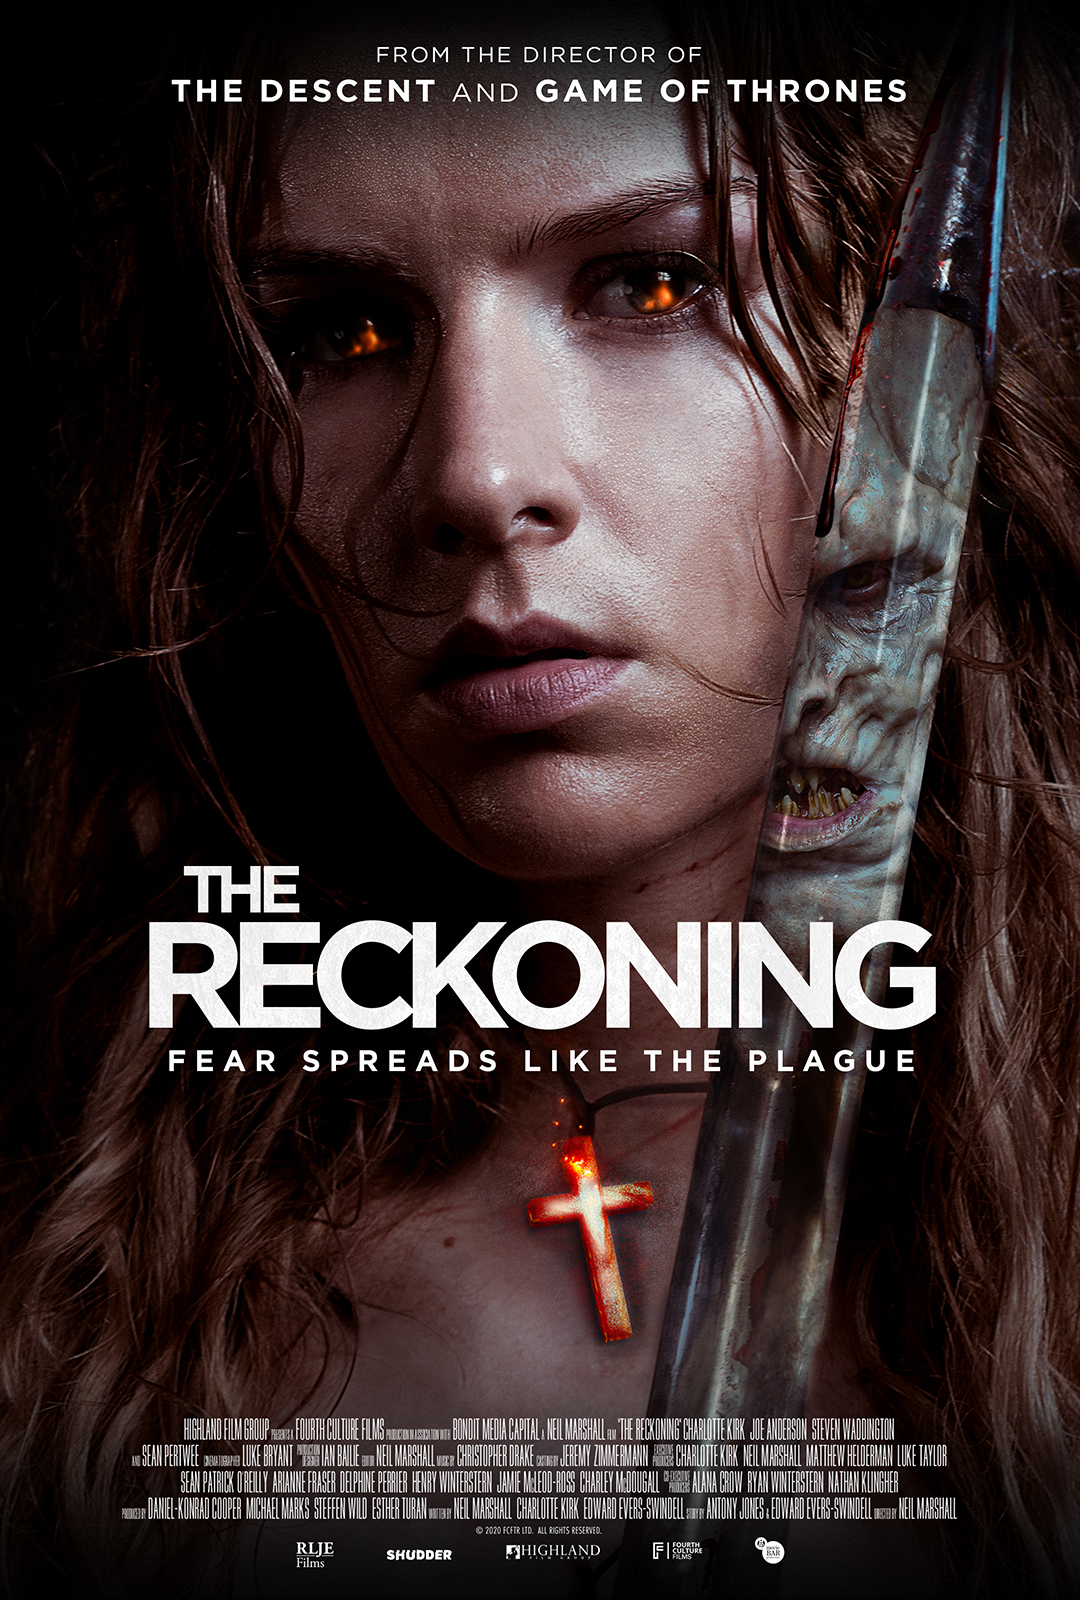 The Reckoning (2020) Bengali Dubbed (Voice Over) WEBRip 720p [Full Movie] 1XBET